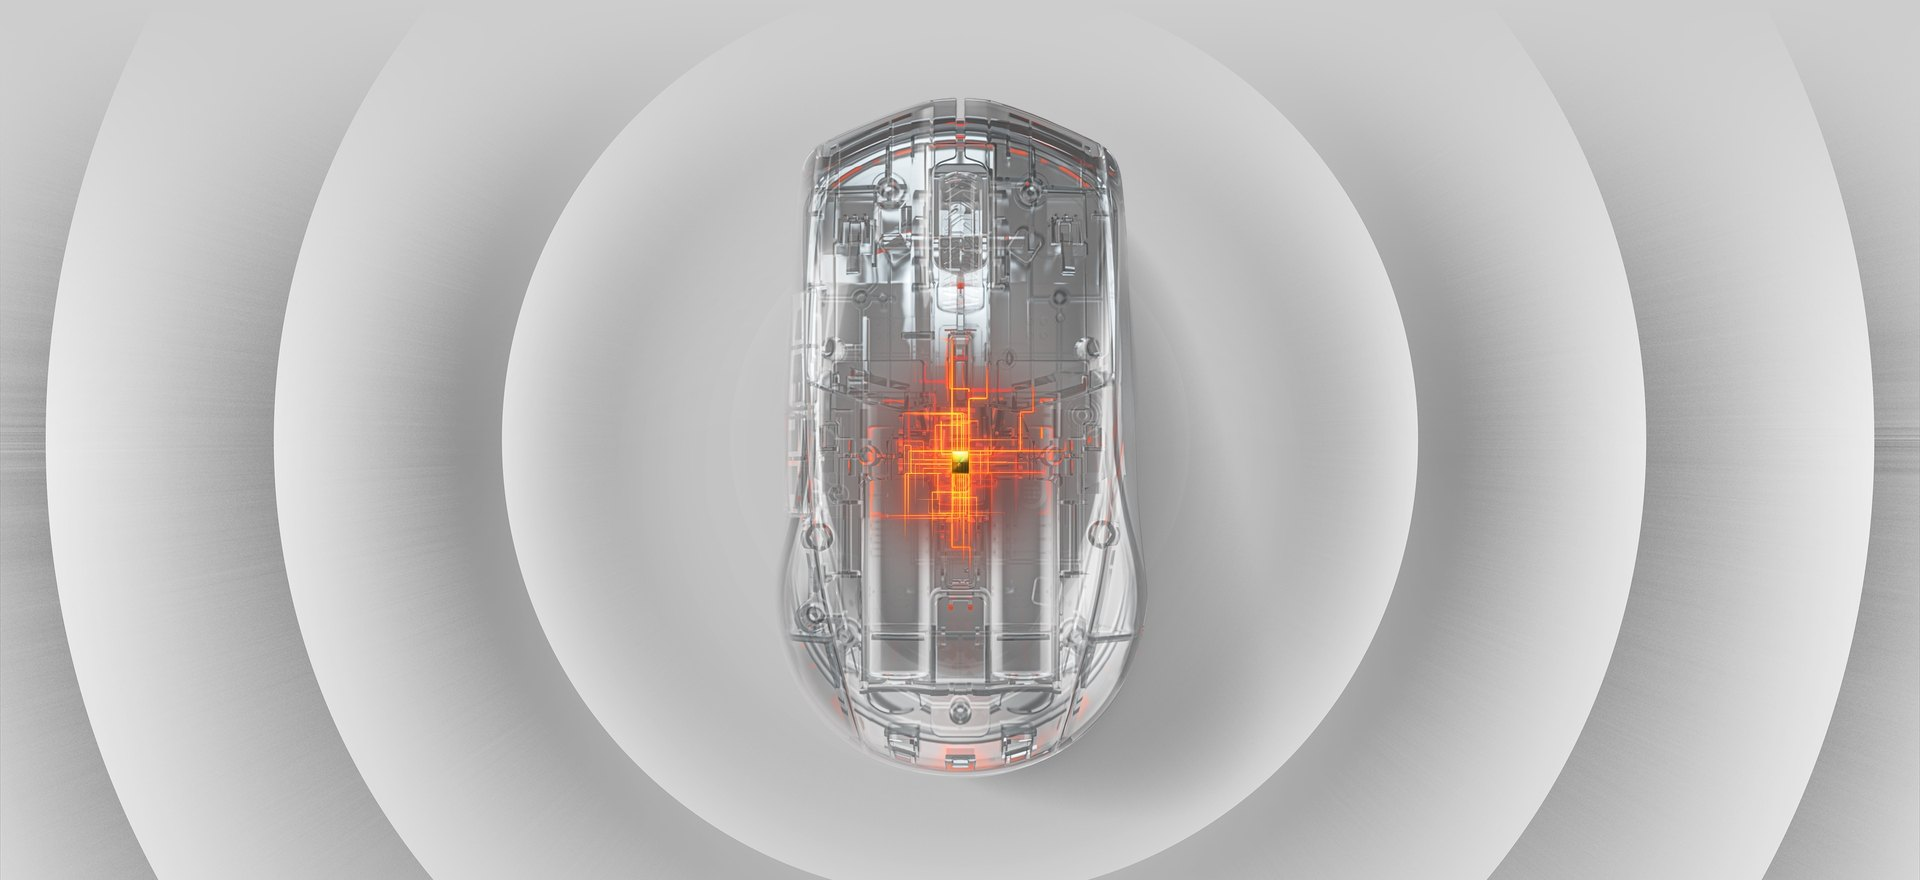 Rival 3 Wireless in an X-ray look with the interior contents of the mouse illuminated